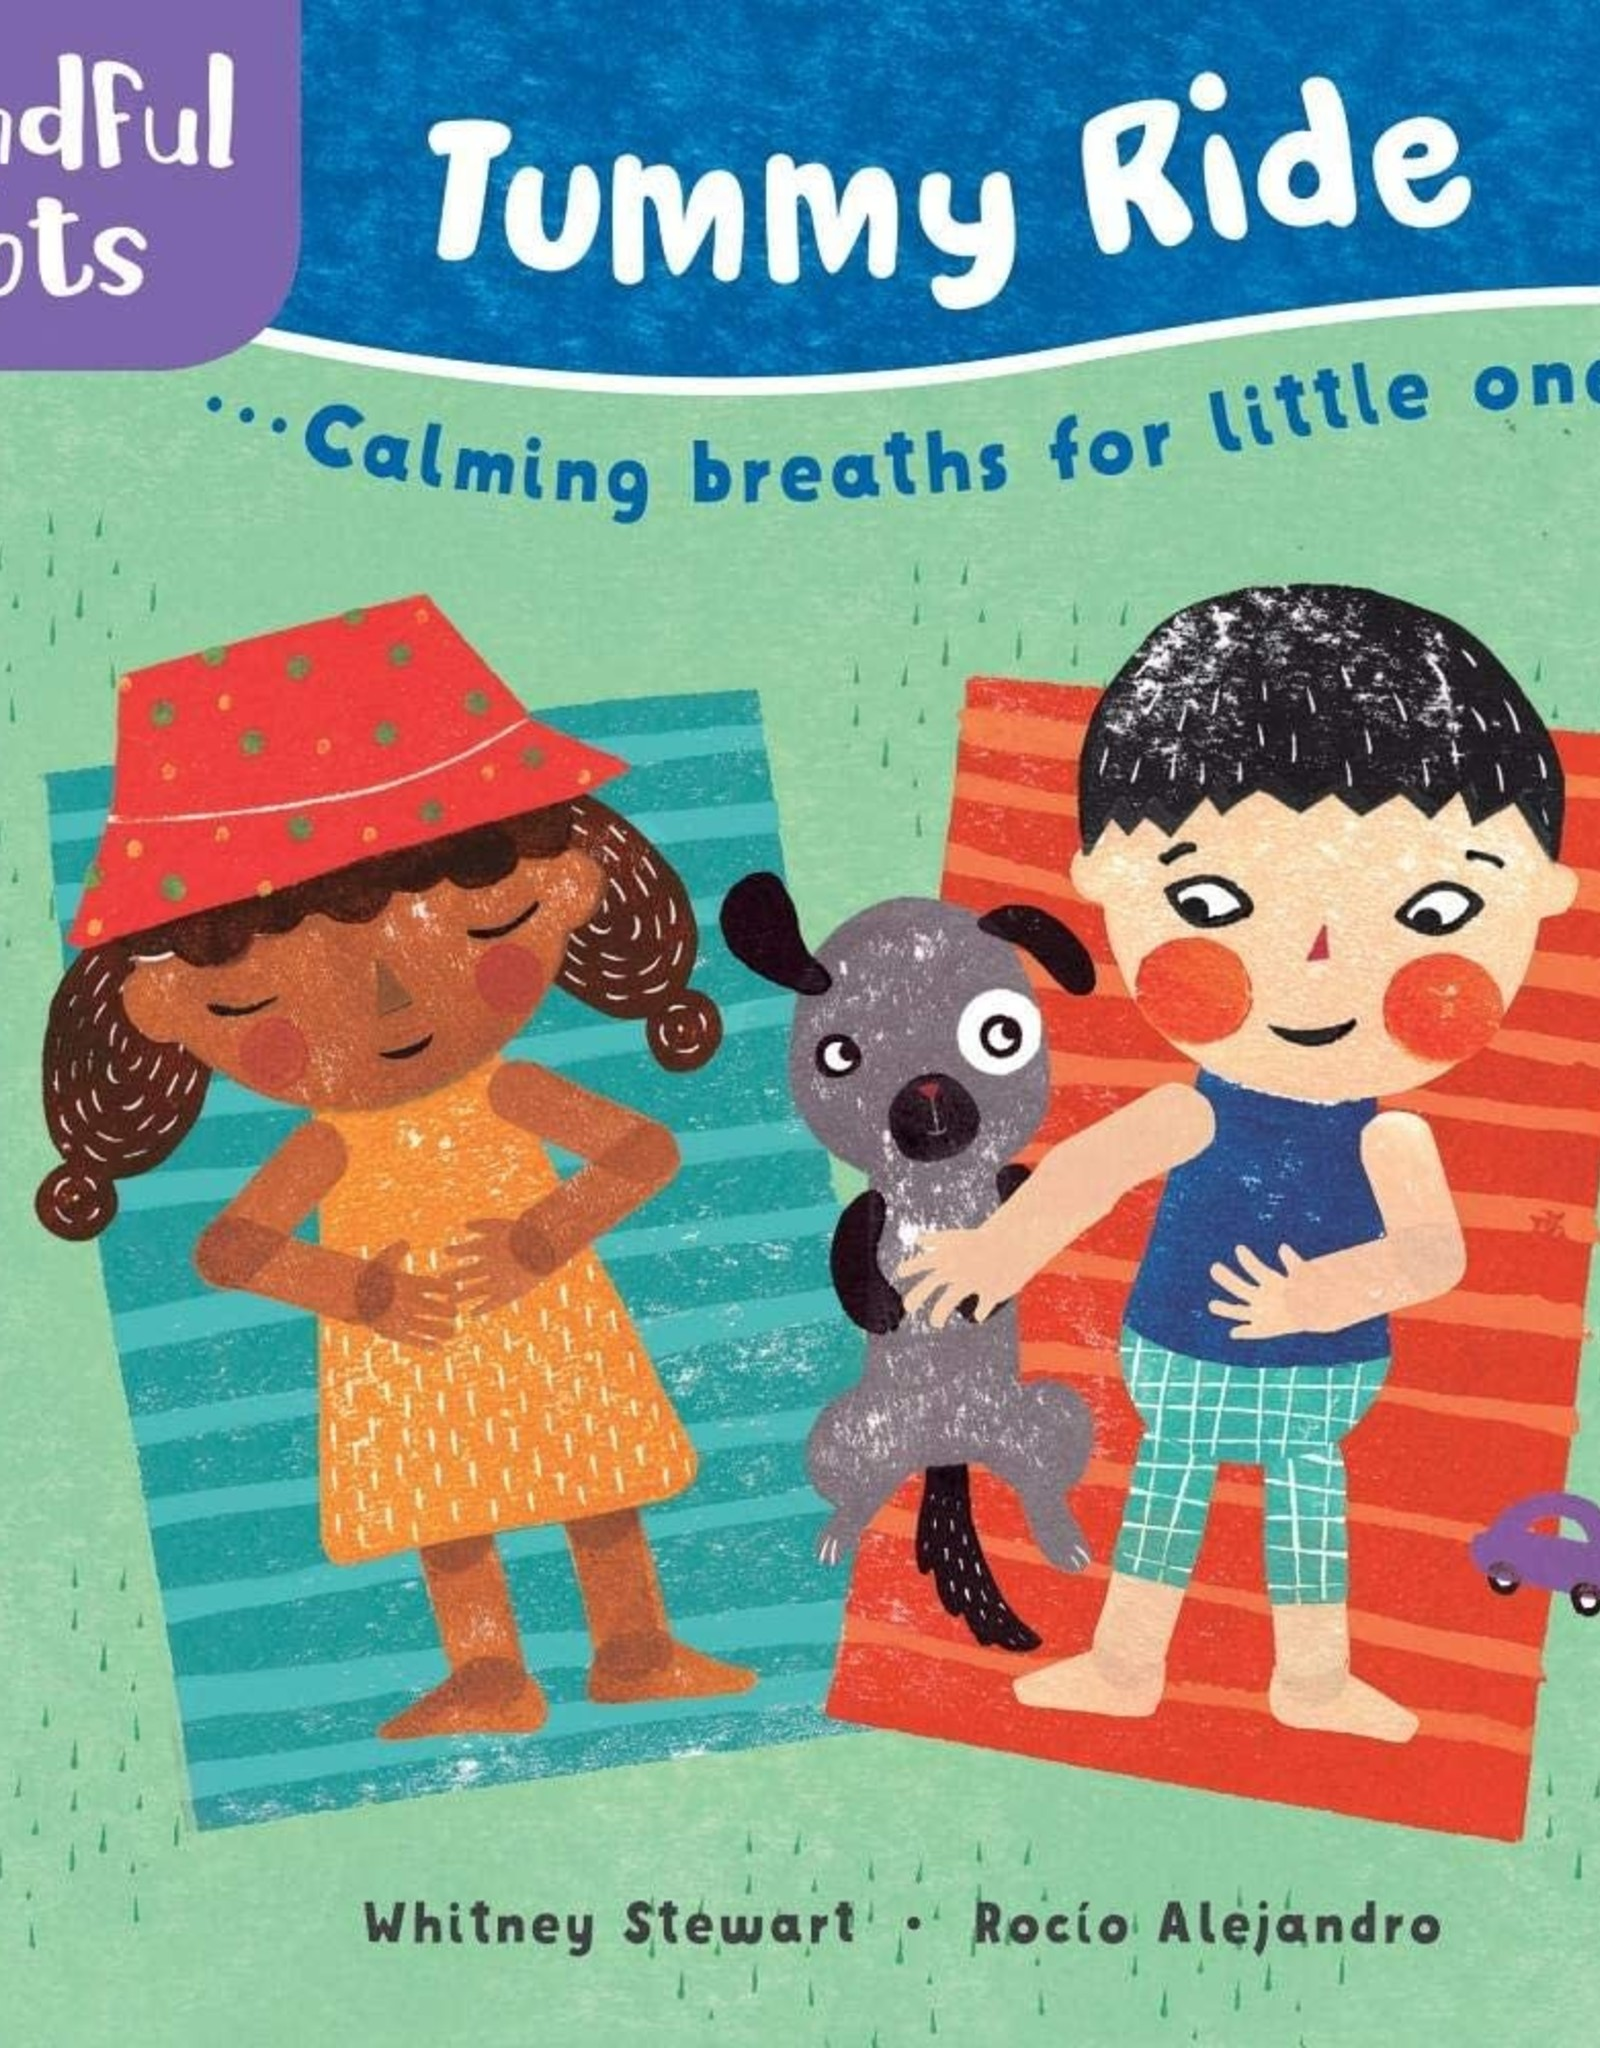 Barefoot Books Mindful Tots: Tummy Ride